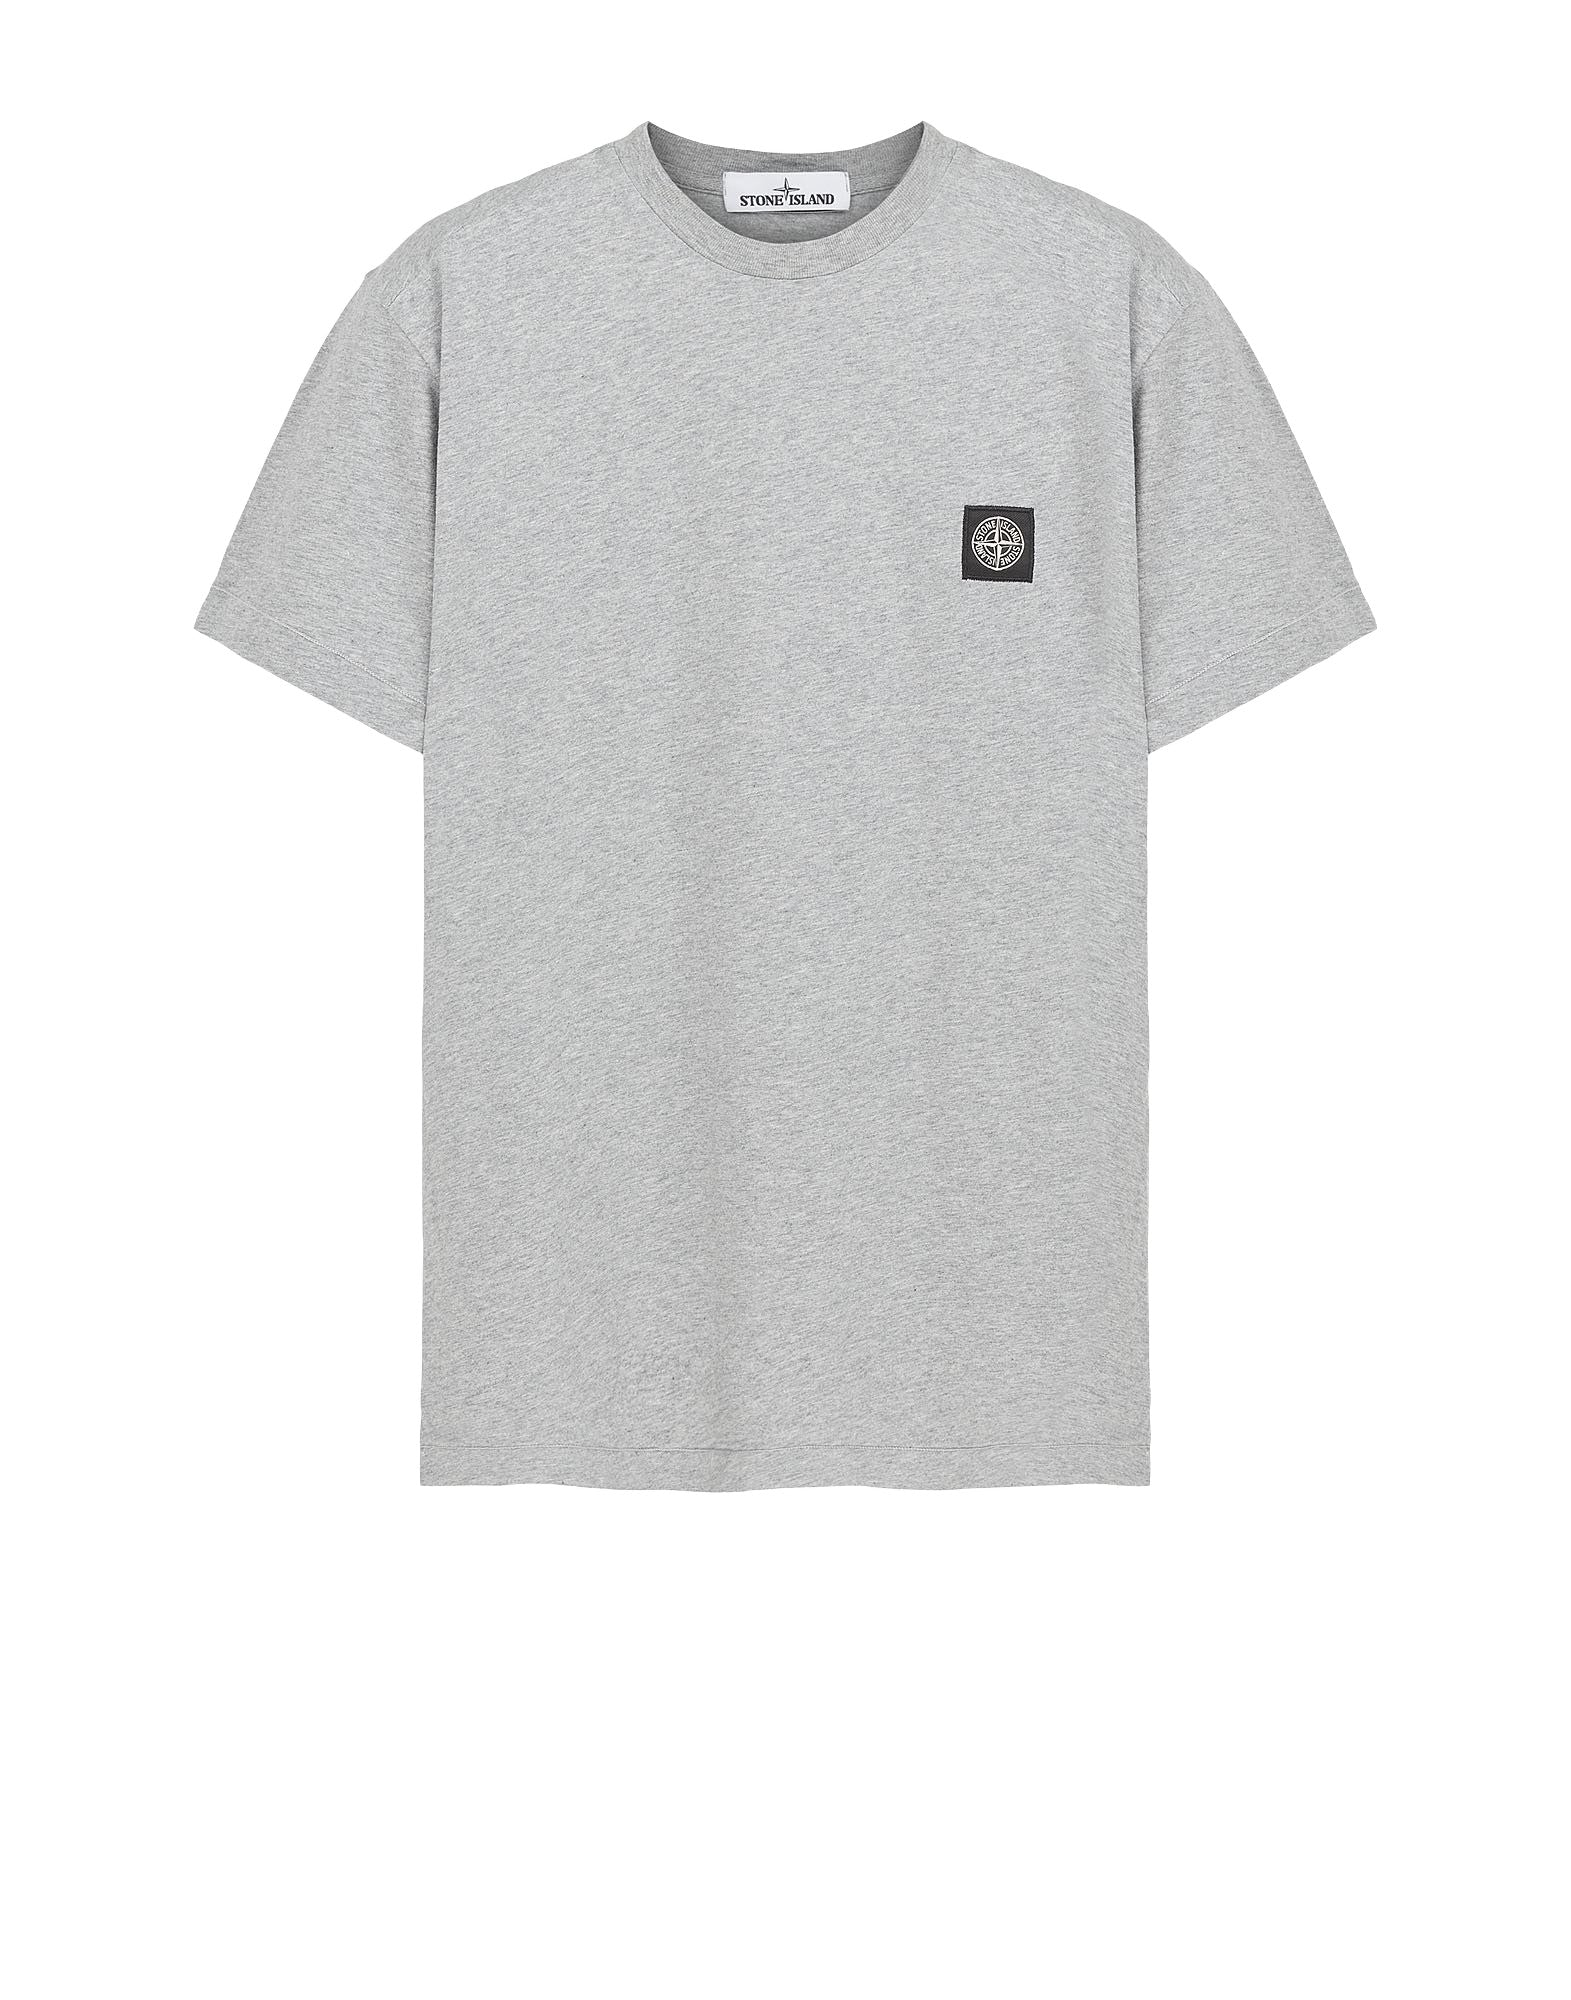 24141 Small Logo Patch T-Shirt in Grey